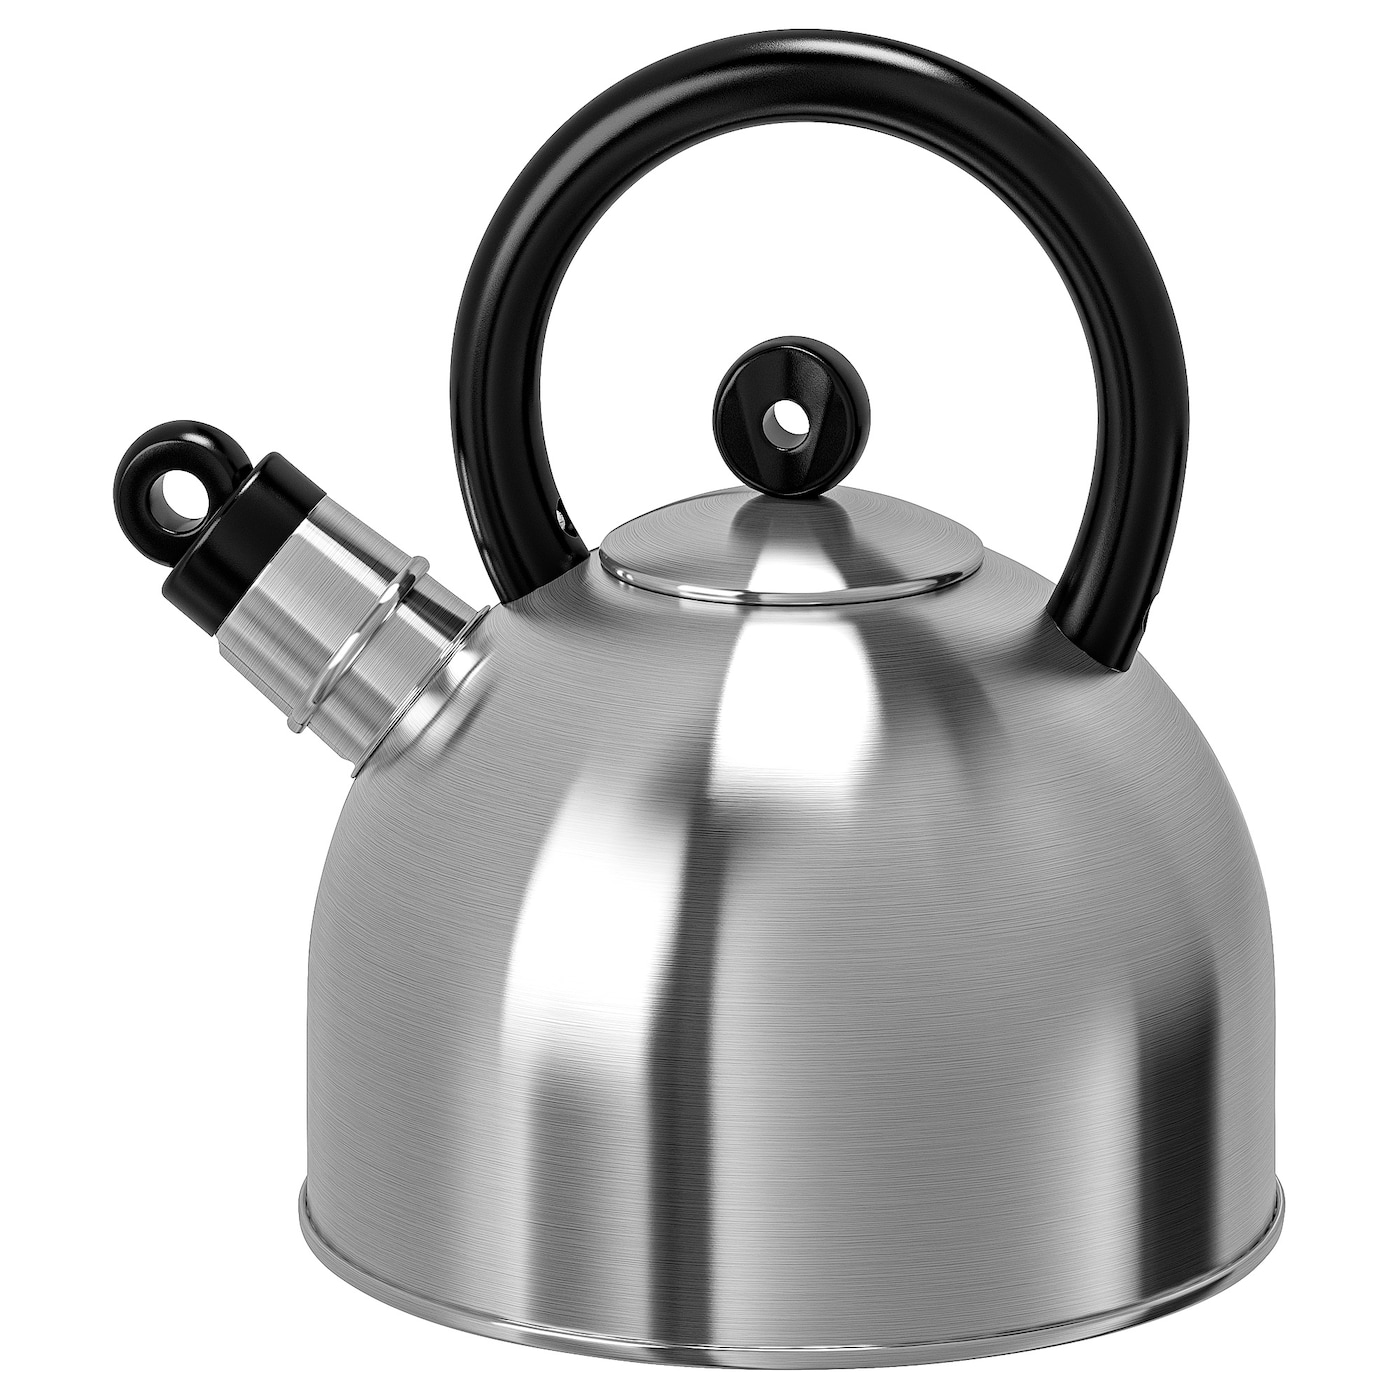 IKEA VATTENTÄT kettle Whistle function when water boils.